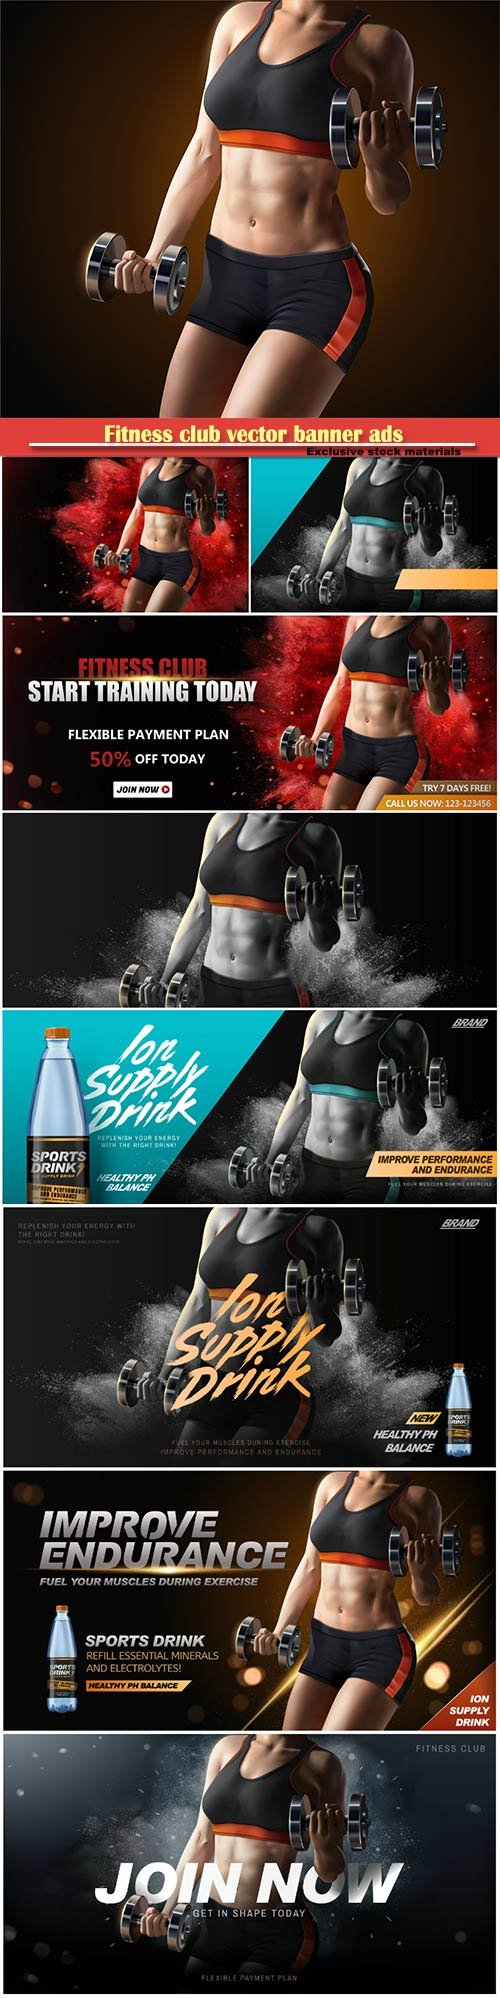 Fitness club vector banner ads